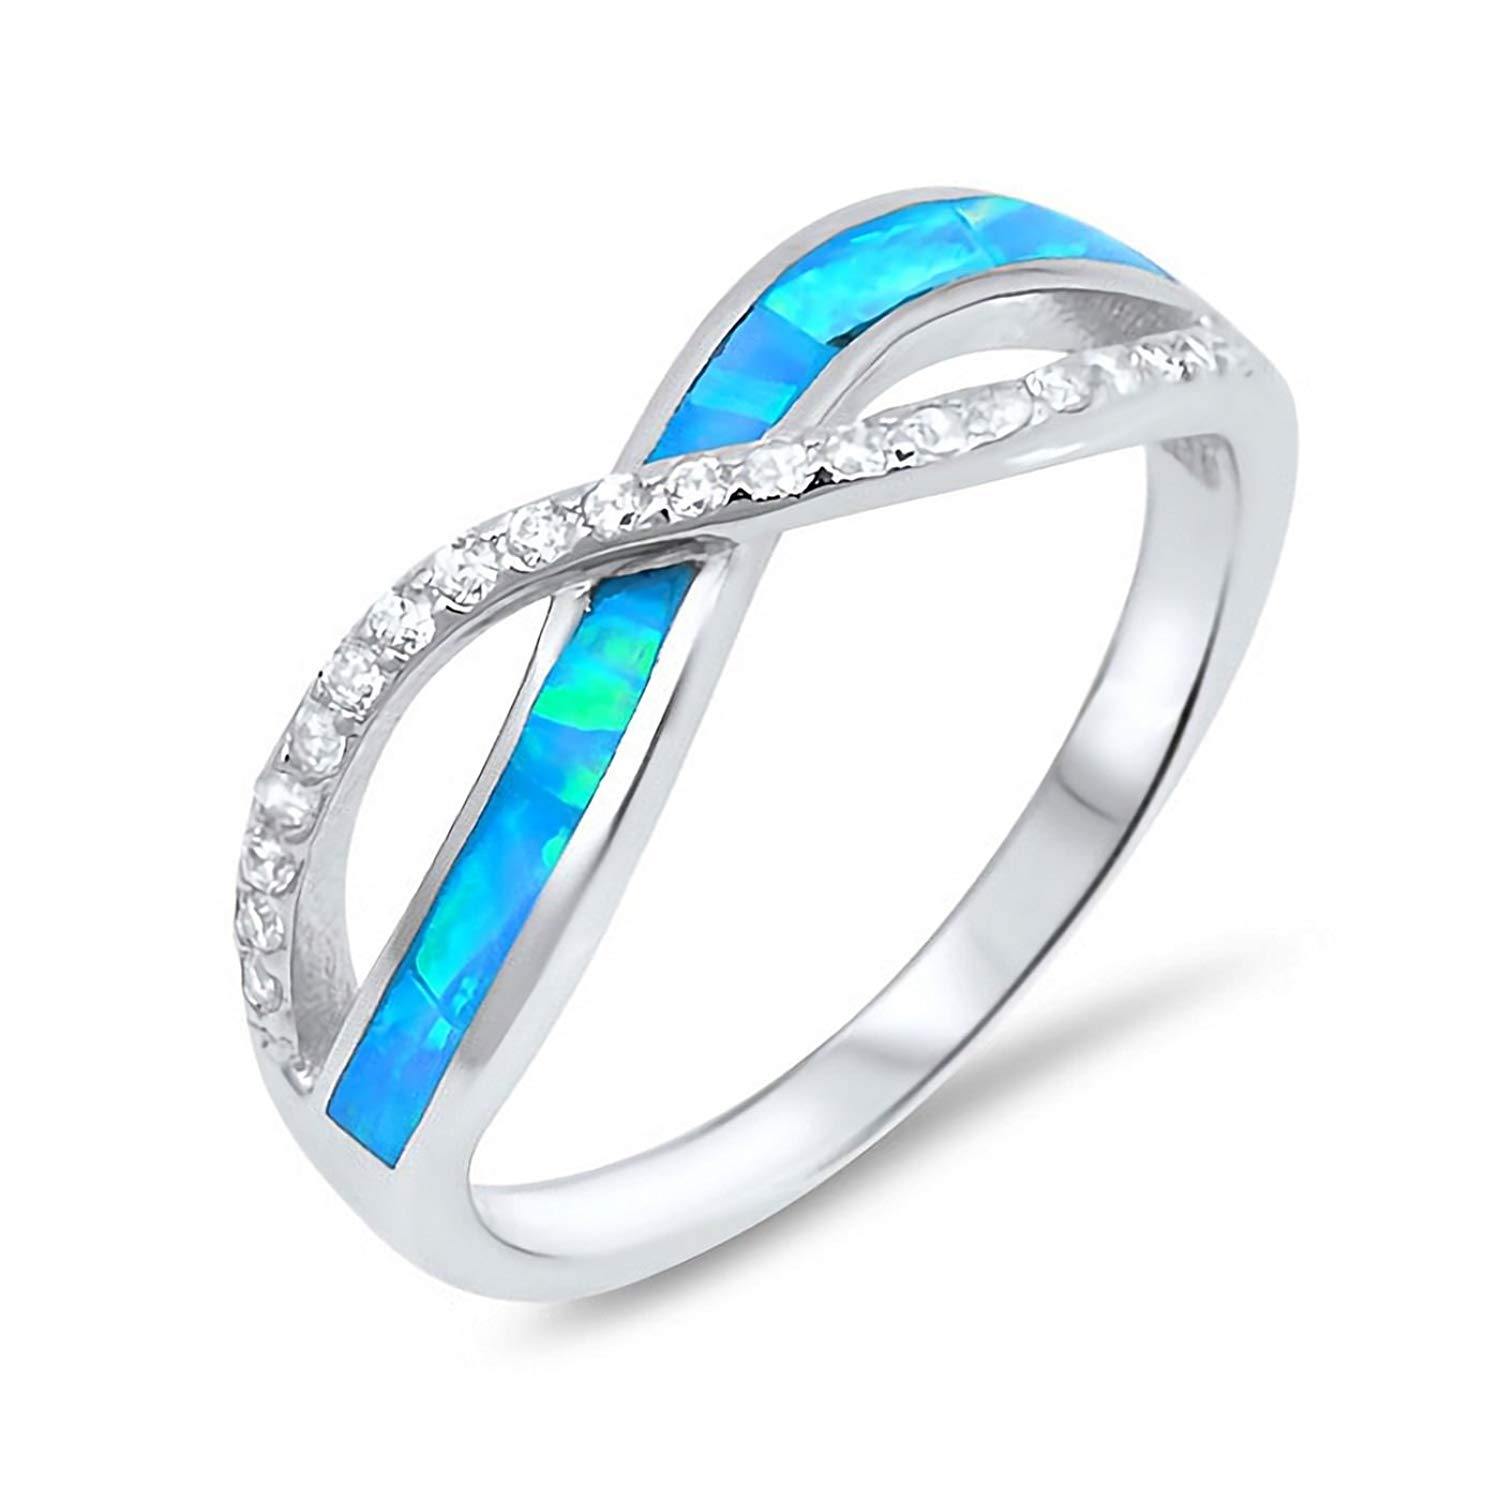 Infinity Created Opal Inlay with Cubic Zirconia 925 Sterling Silver Promise Ring Sizes 4-11